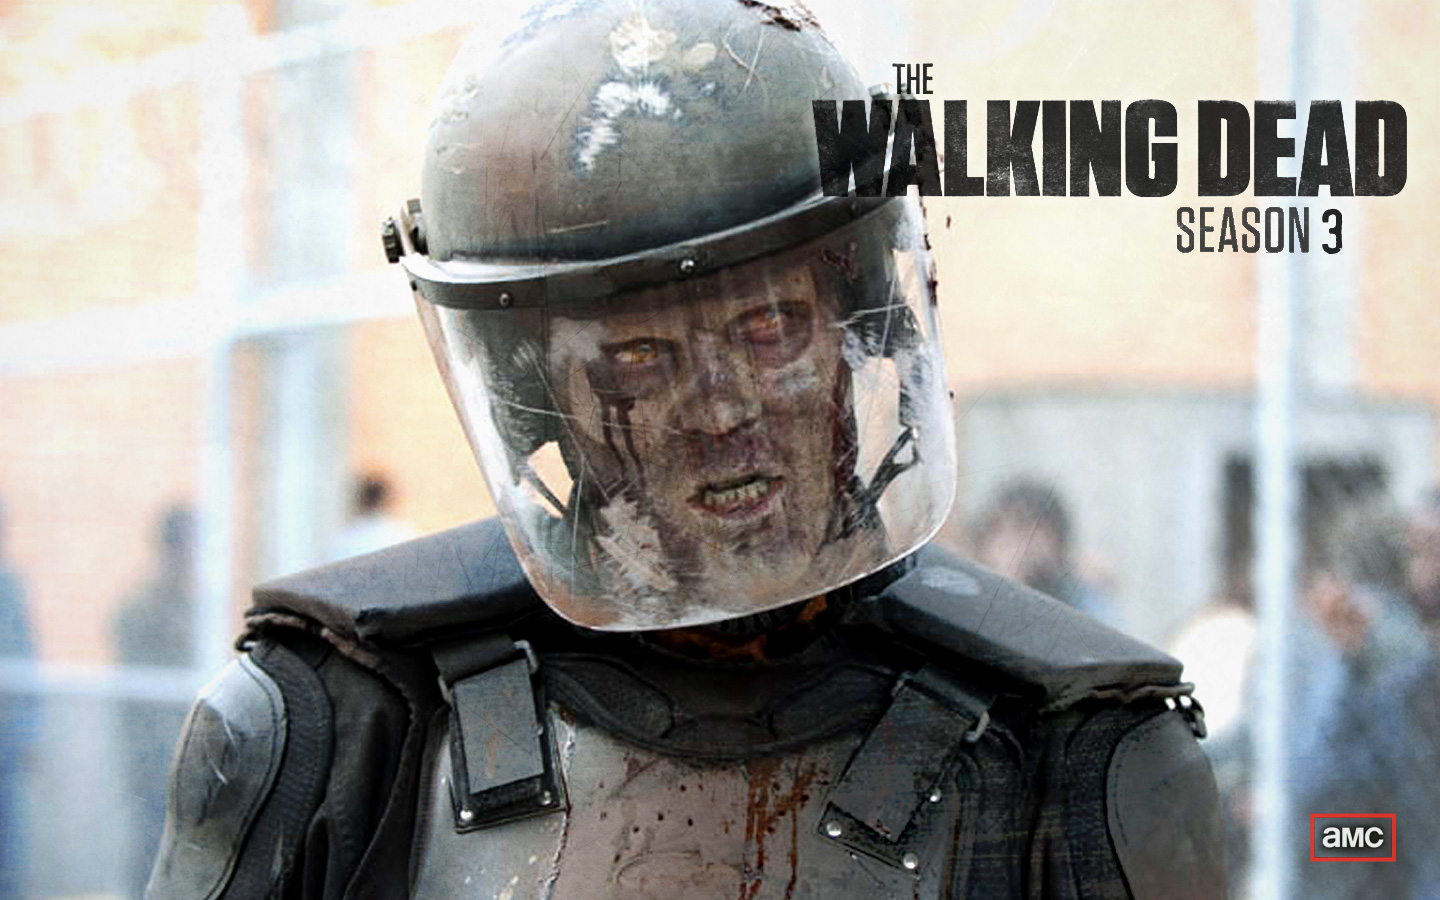 The Walking Dead Season 3 Wallpaper | Zombies | Pinterest